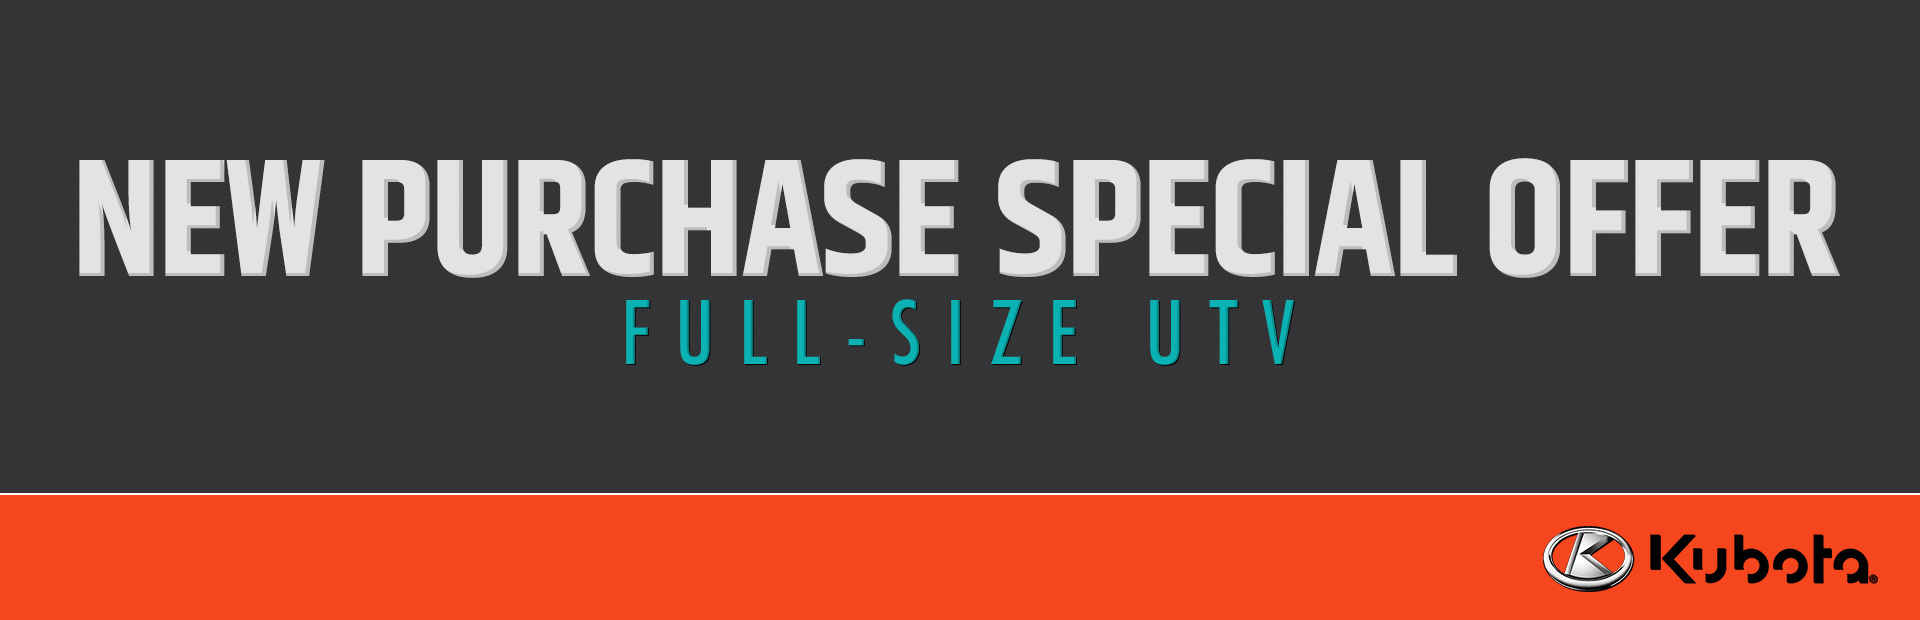 Kubota: New Purchase Special Offer - Full-Size UTV